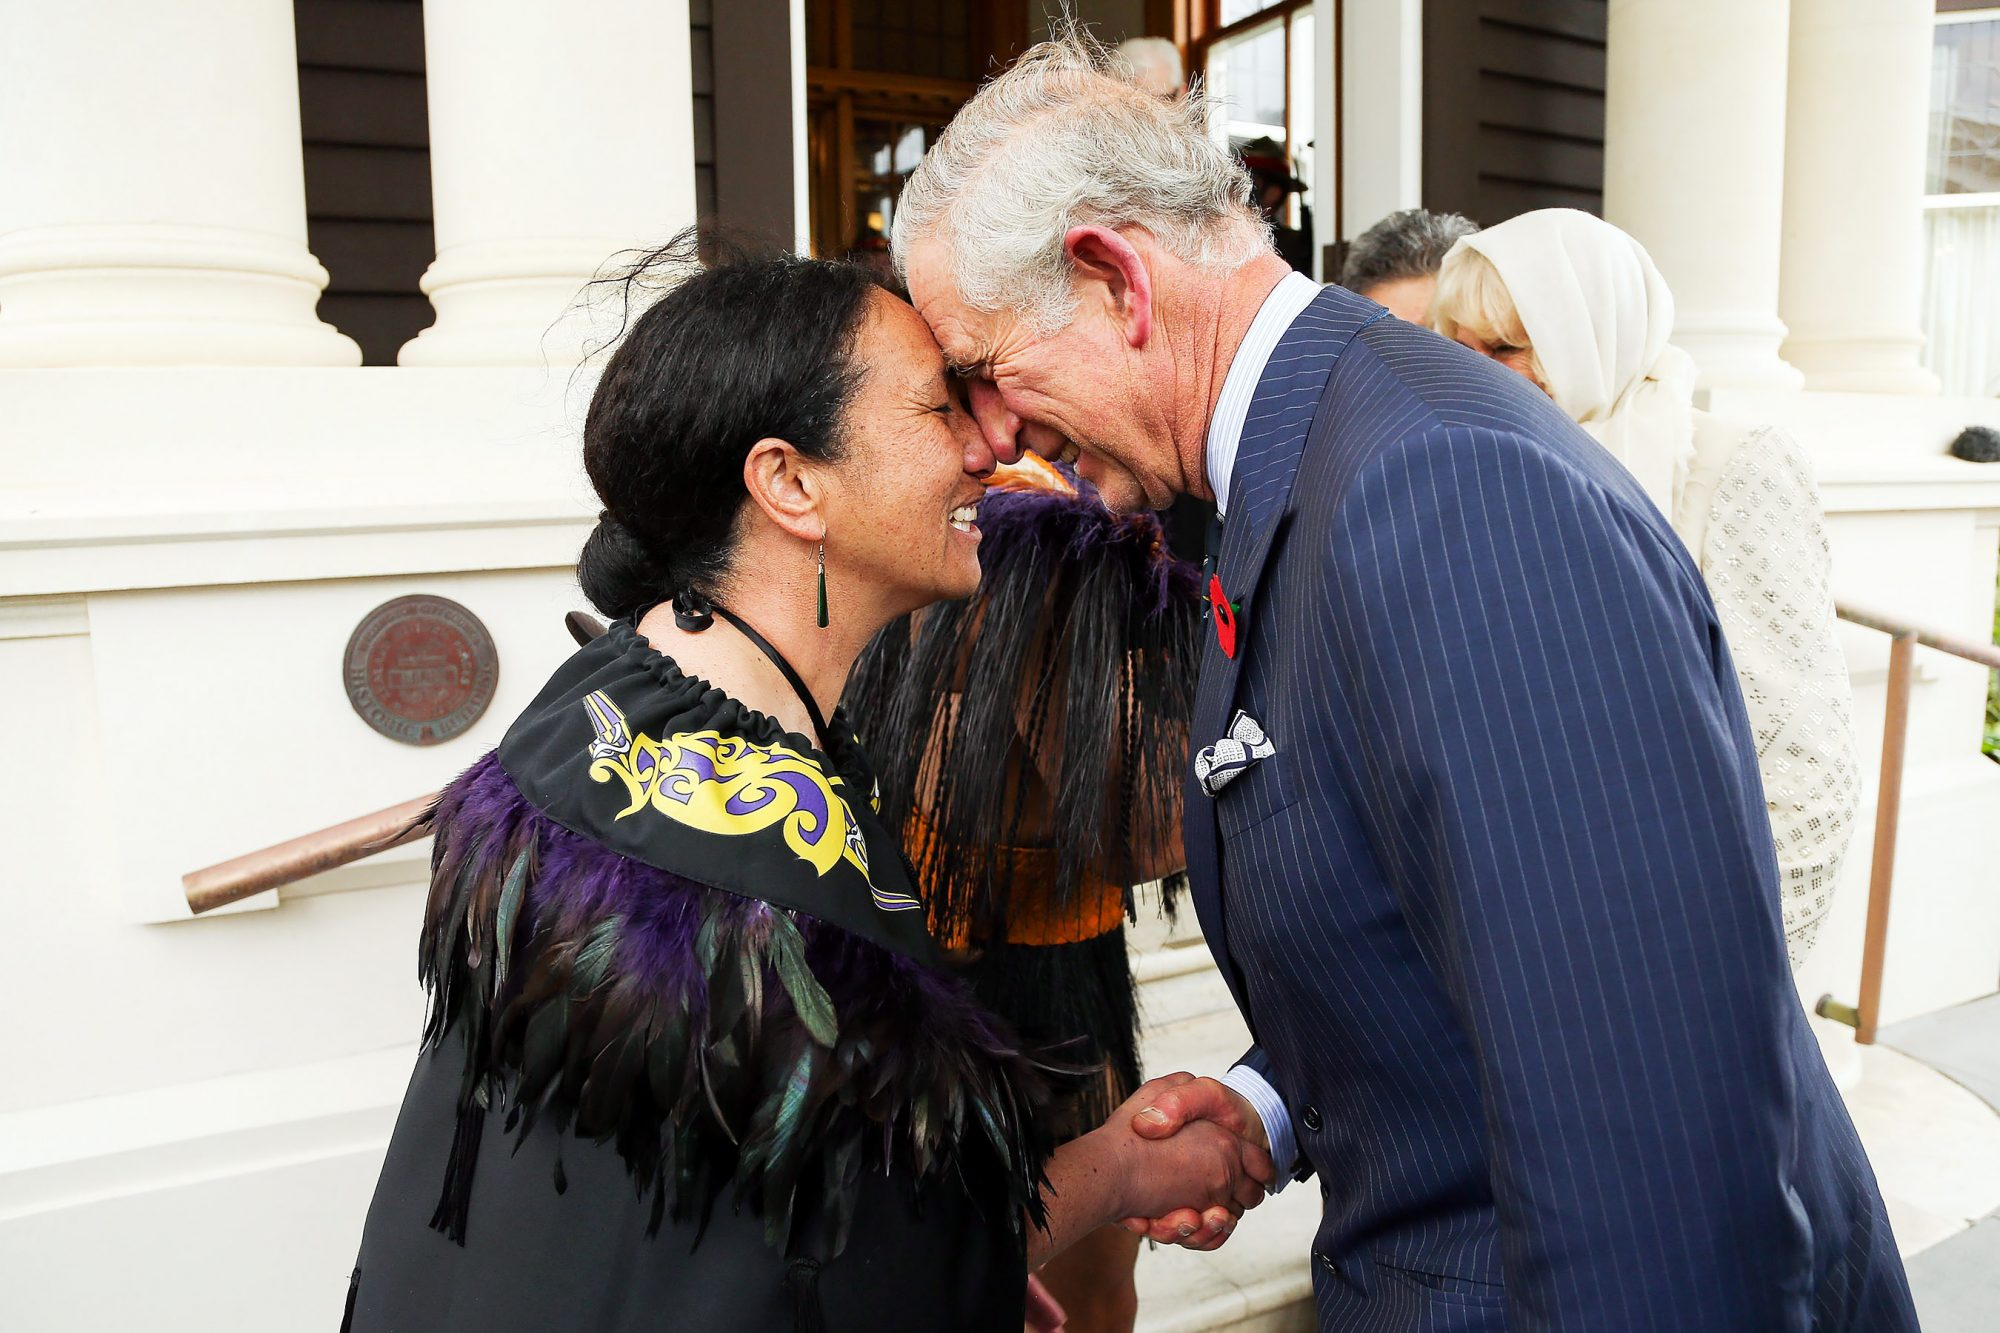 The Prince Of Wales & Duchess Of Cornwall Visit New Zealand - Day 1